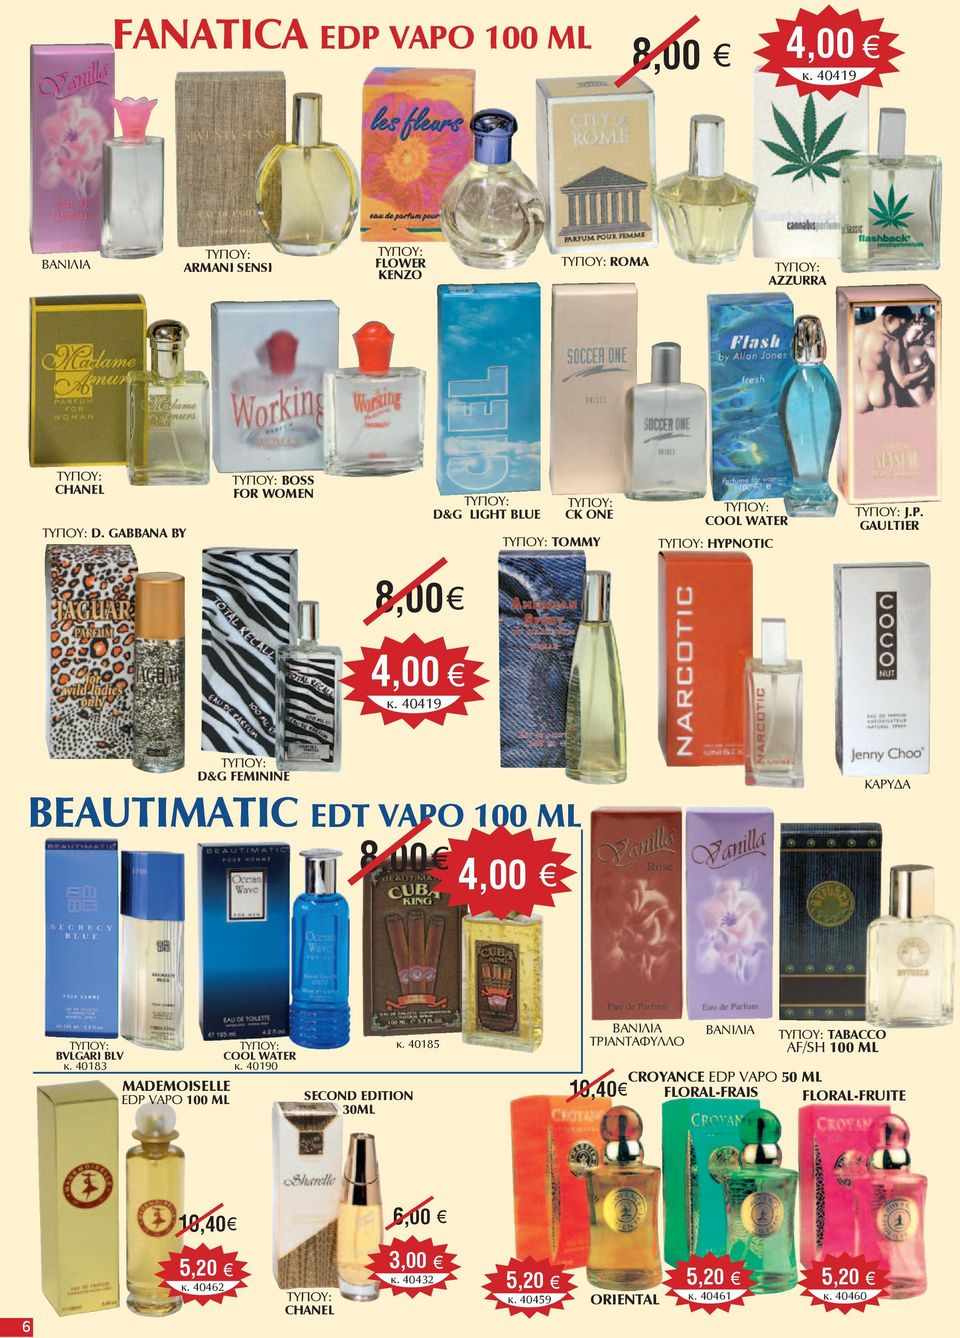 40419 D&G FEMININE BEAUTIMATIC EDT VAPO 8,00 ΚΑΡΥΔΑ BVLGARI BLV COOL WATER κ. 40183 κ.